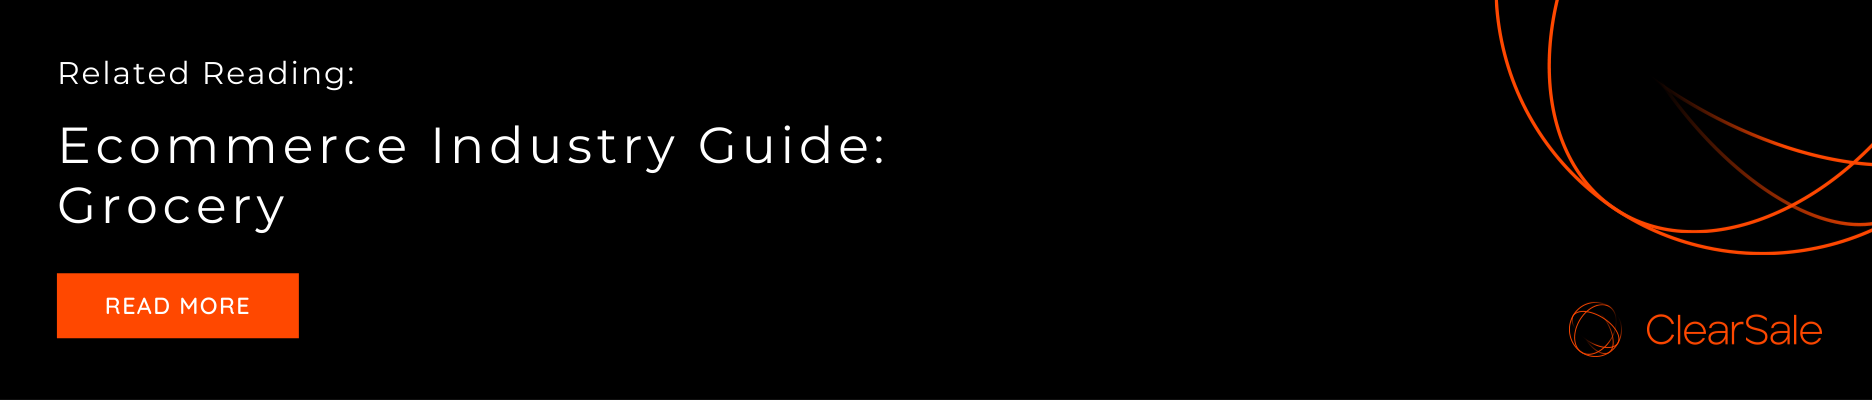 Related Reading: Ecommerce Industry Guide: Grocery